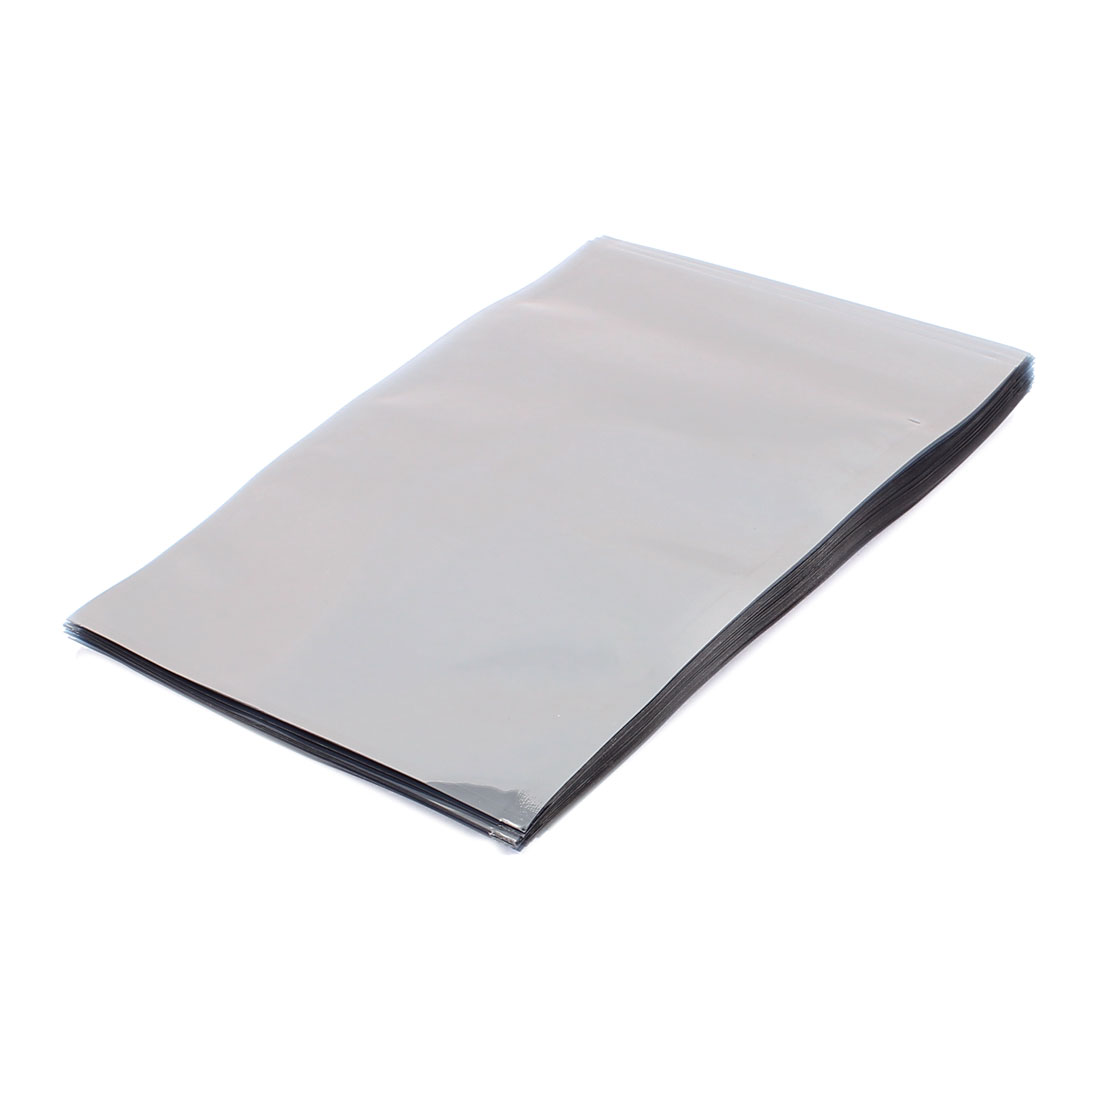 50 Pcs 120mm x 180mm Silver Tone Flat Open Top Anti Static Bag For Electronics